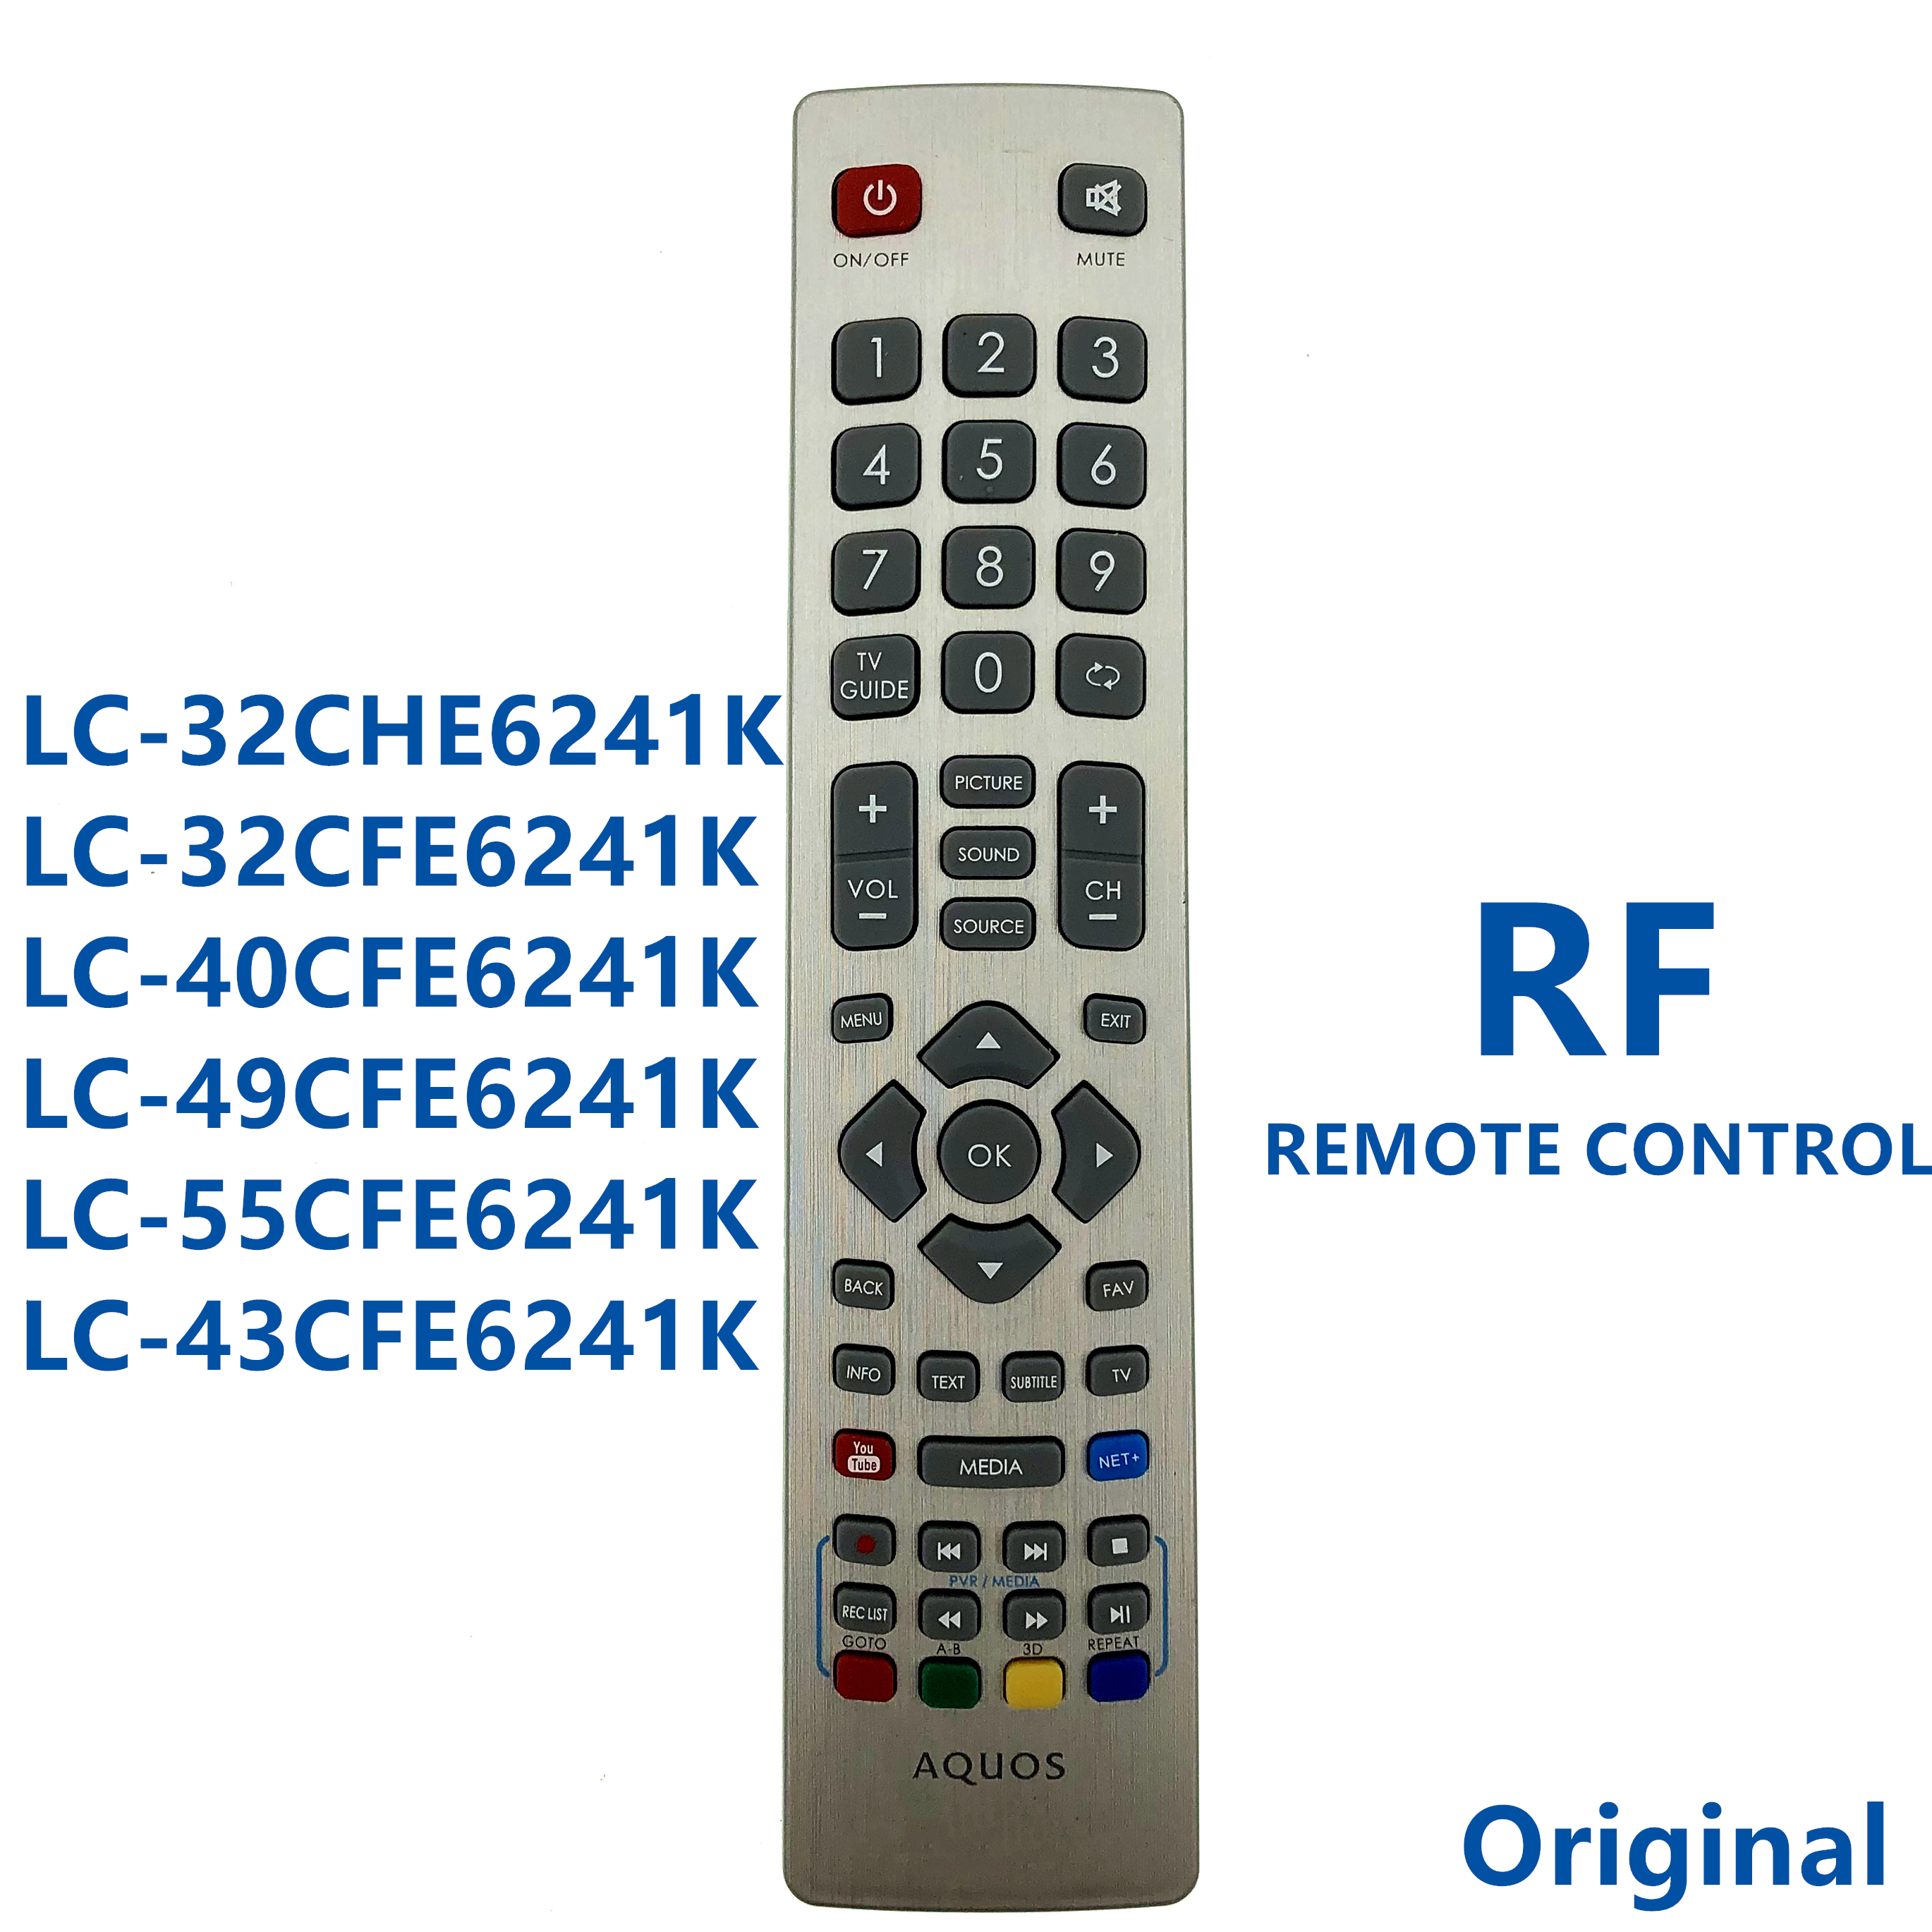 RF Remote Control For Sharp AQUOS 3D TV LC 32CHE6241K LC 32CFE6241K LC 40CFE6241K LC 49CFE6241K LC 55CFE6241K LC 43CFE6241K